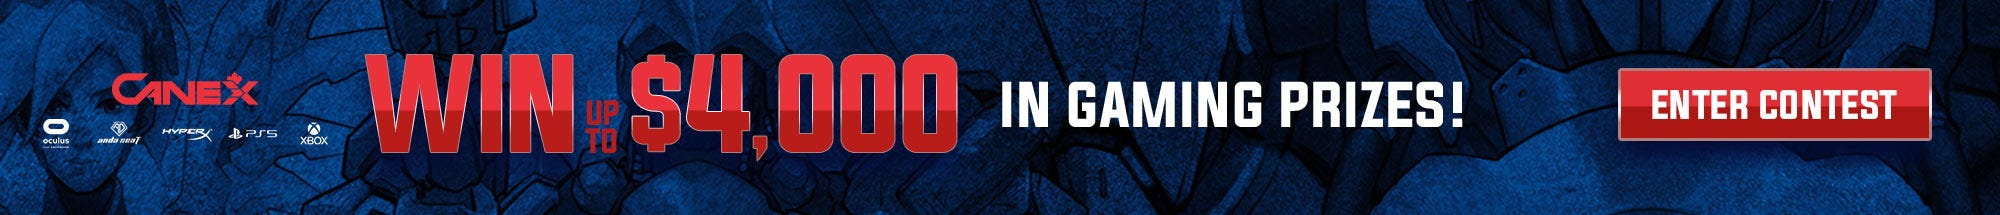 Game On Canex! Win up to $4000 in Gaming Prizes.